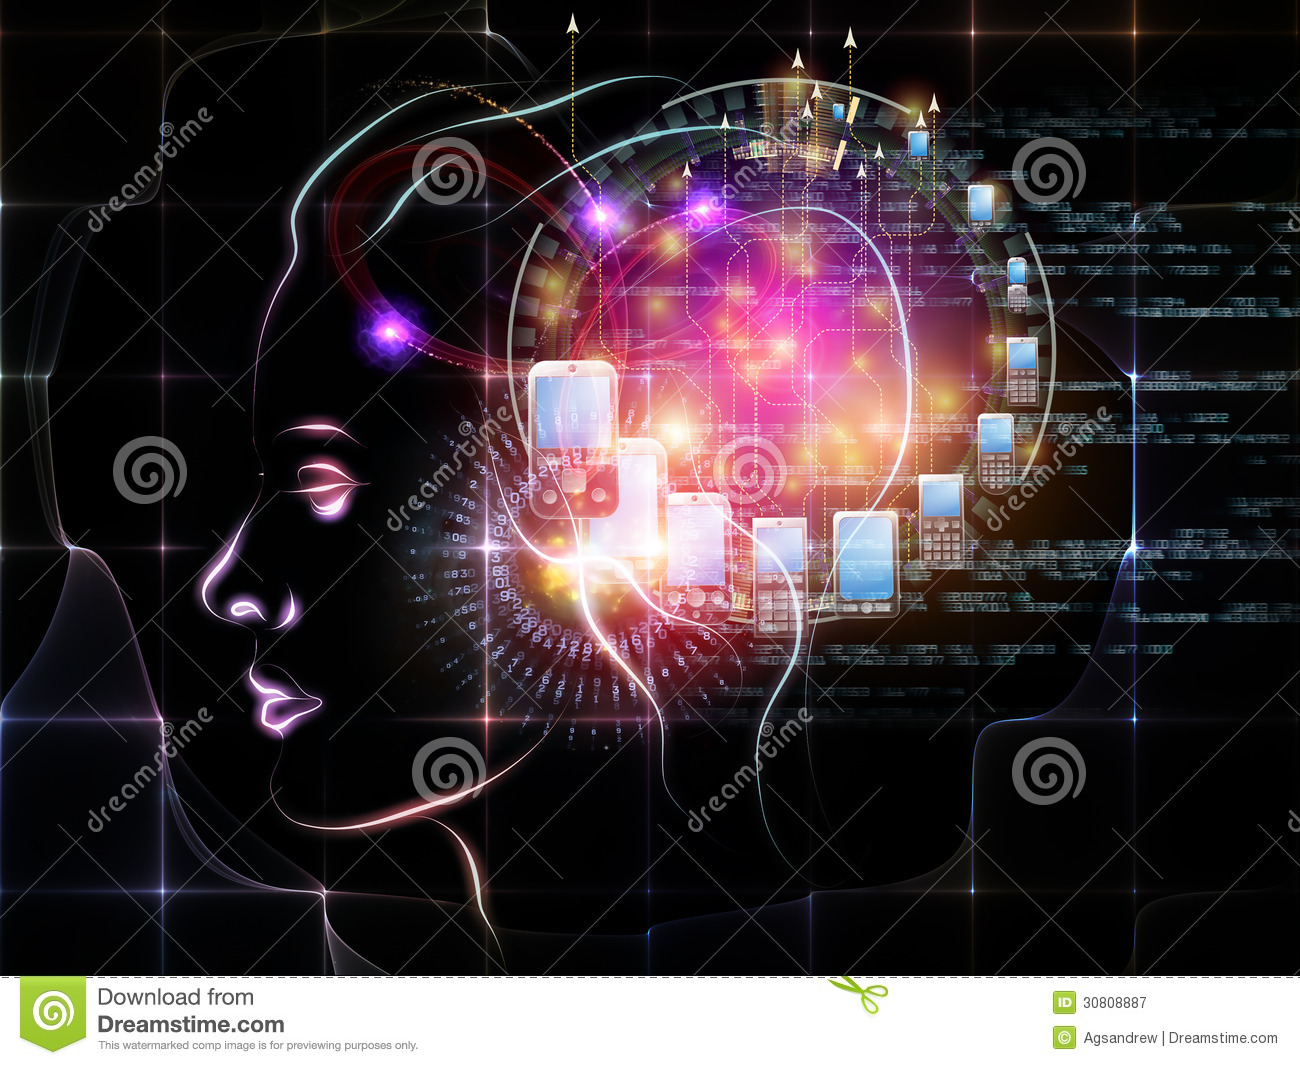 Dvorak Clear Stickers in addition 5 likewise Diagram Of  puter Monitor further Royalty Free Stock Photography Virtual Intelligence Series Artistic Abstraction  posed Human Head Outlines Lights Fractal Elements Subject Image30808887 as well Preview. on laptop screen diagram